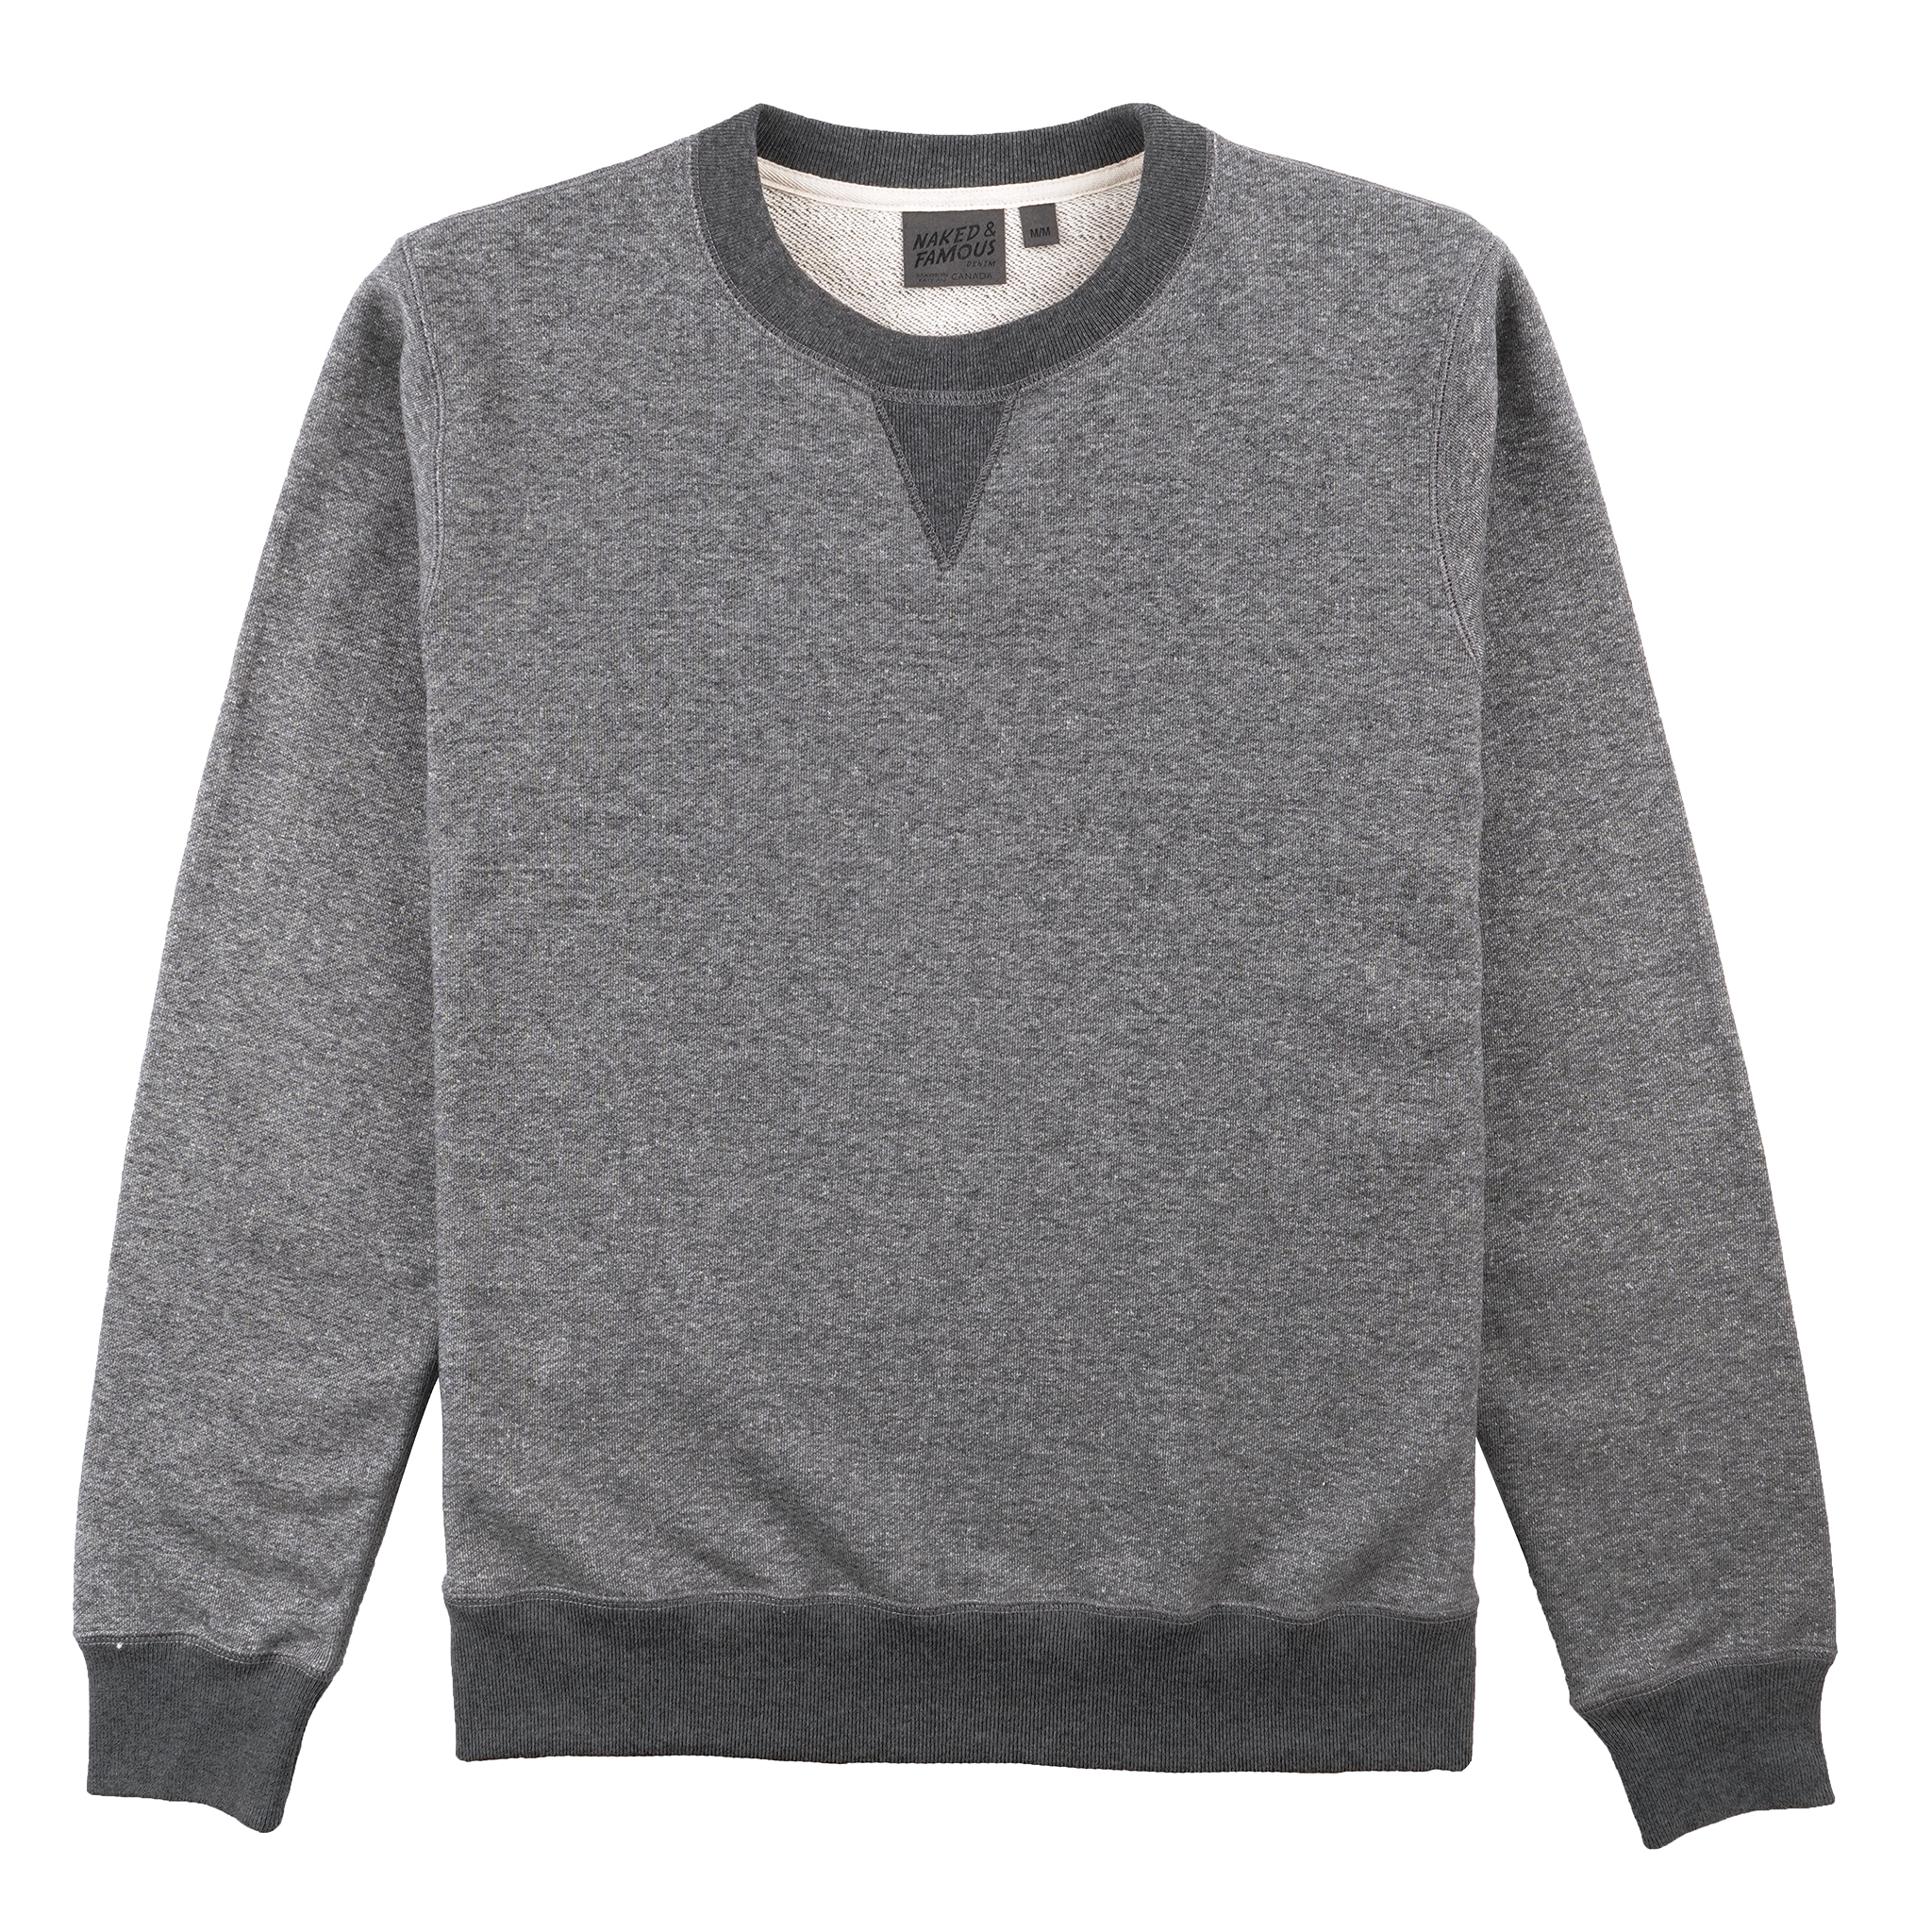 Heavyweight Terry - Charcoal - Crewneck